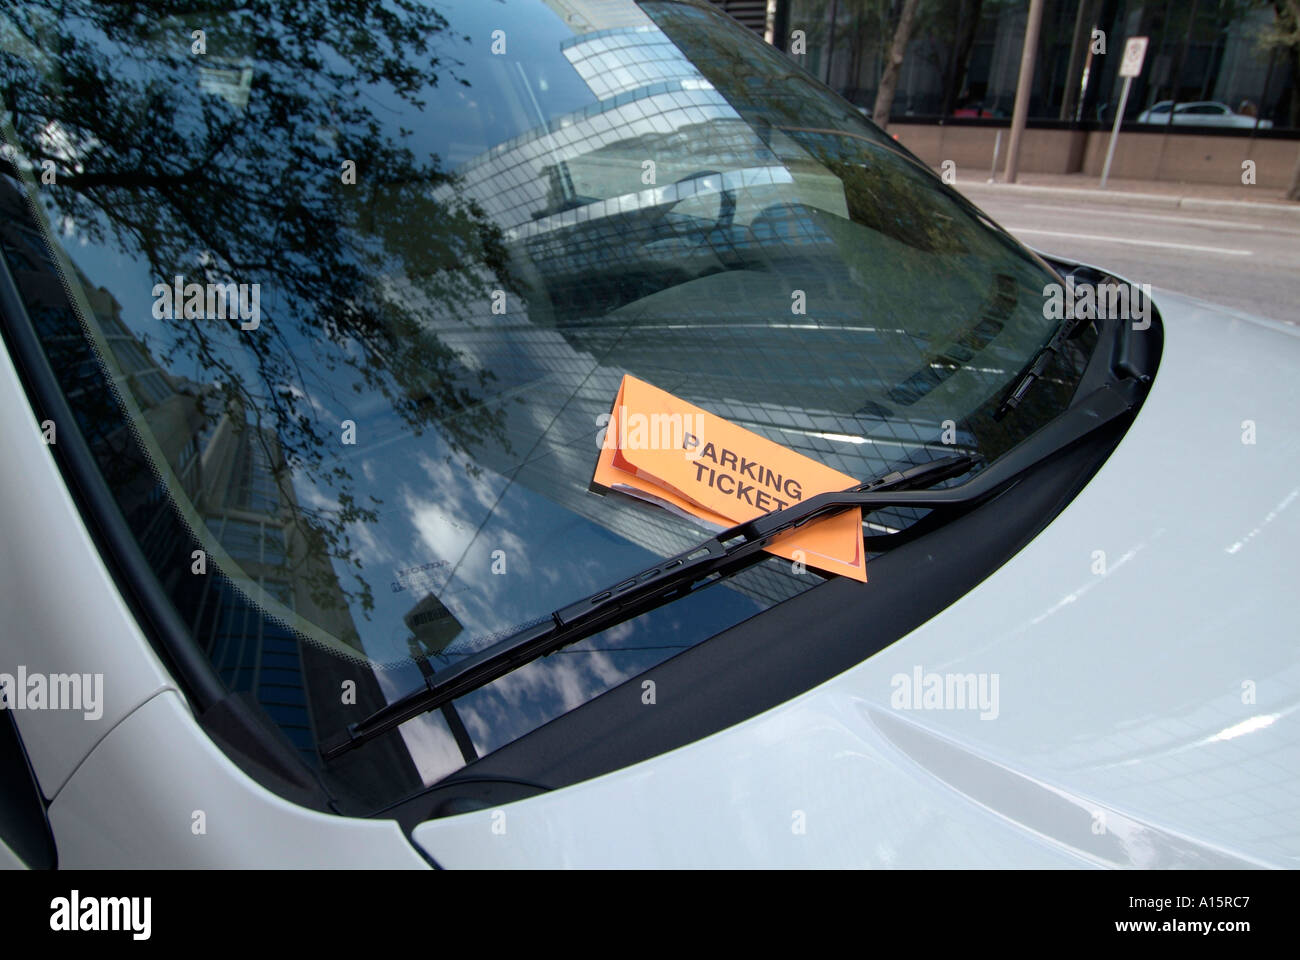 Parking ticket is issued to car parked at an expired parking meter in downtown Tampa Florida - Stock Image